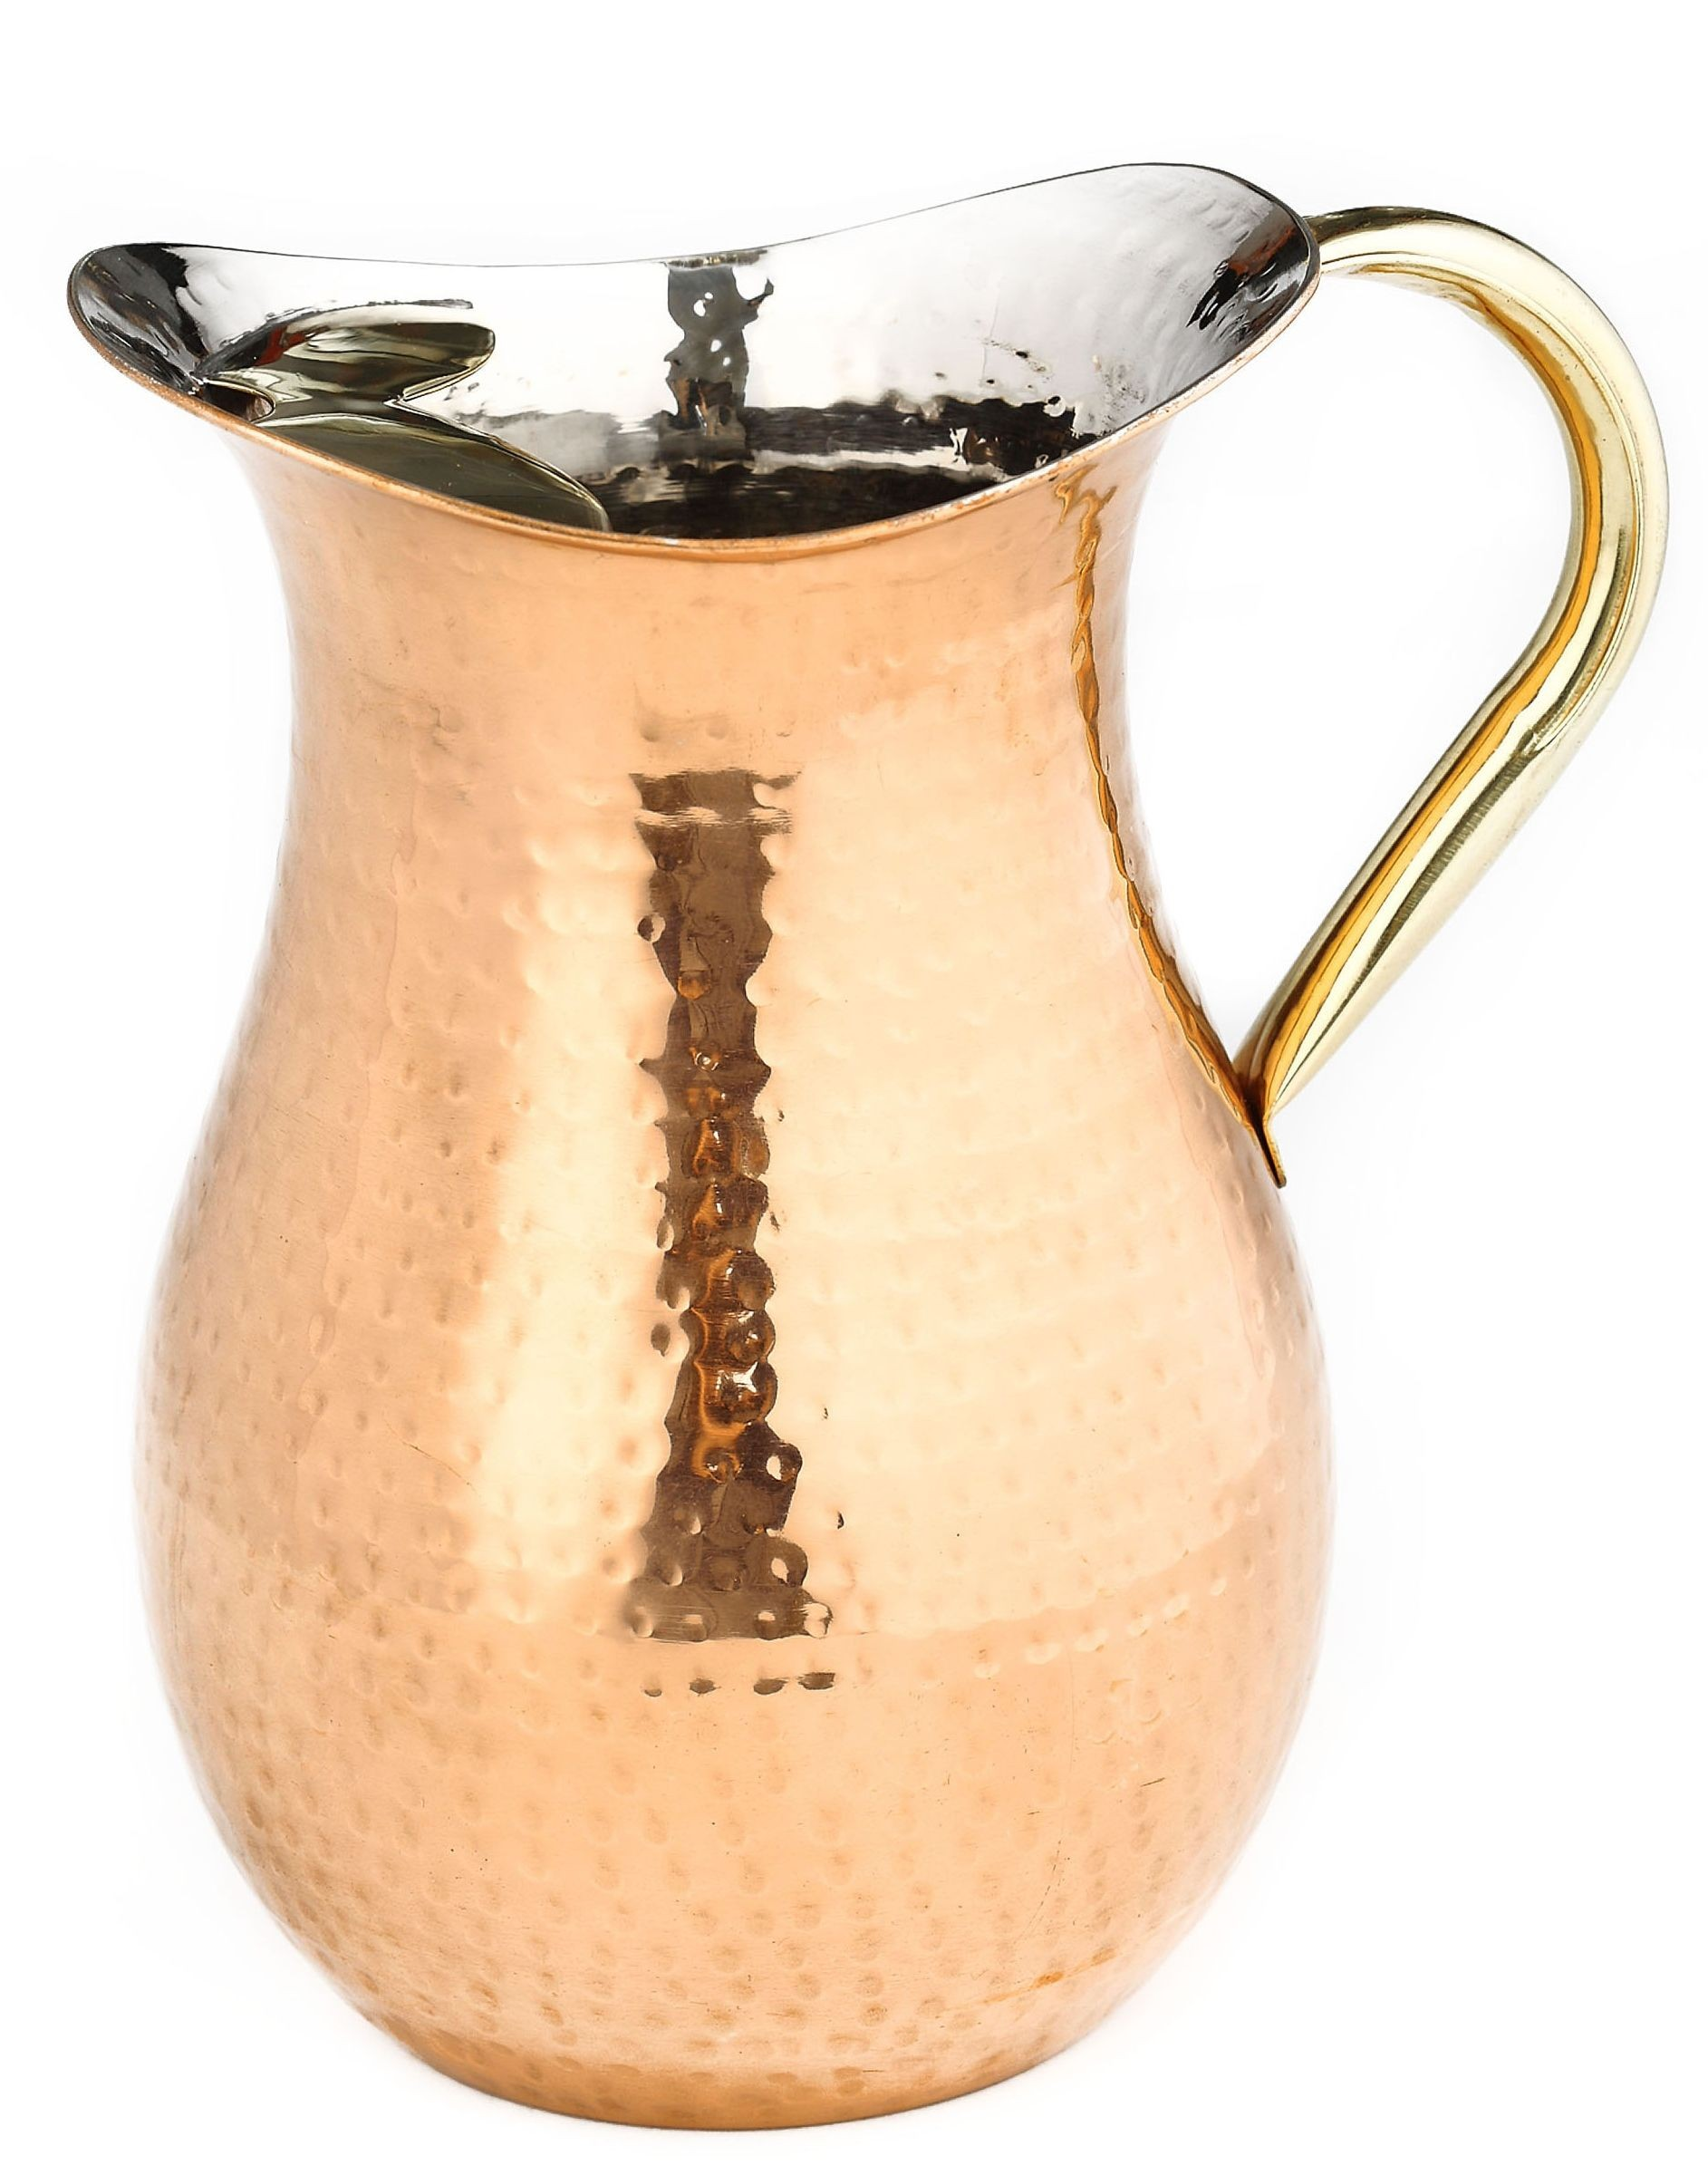 Old Dutch International 808 Decor Copper Hammered Water Pitcher with Ice Guard and Brass Handle, 2 1/4 Qt.